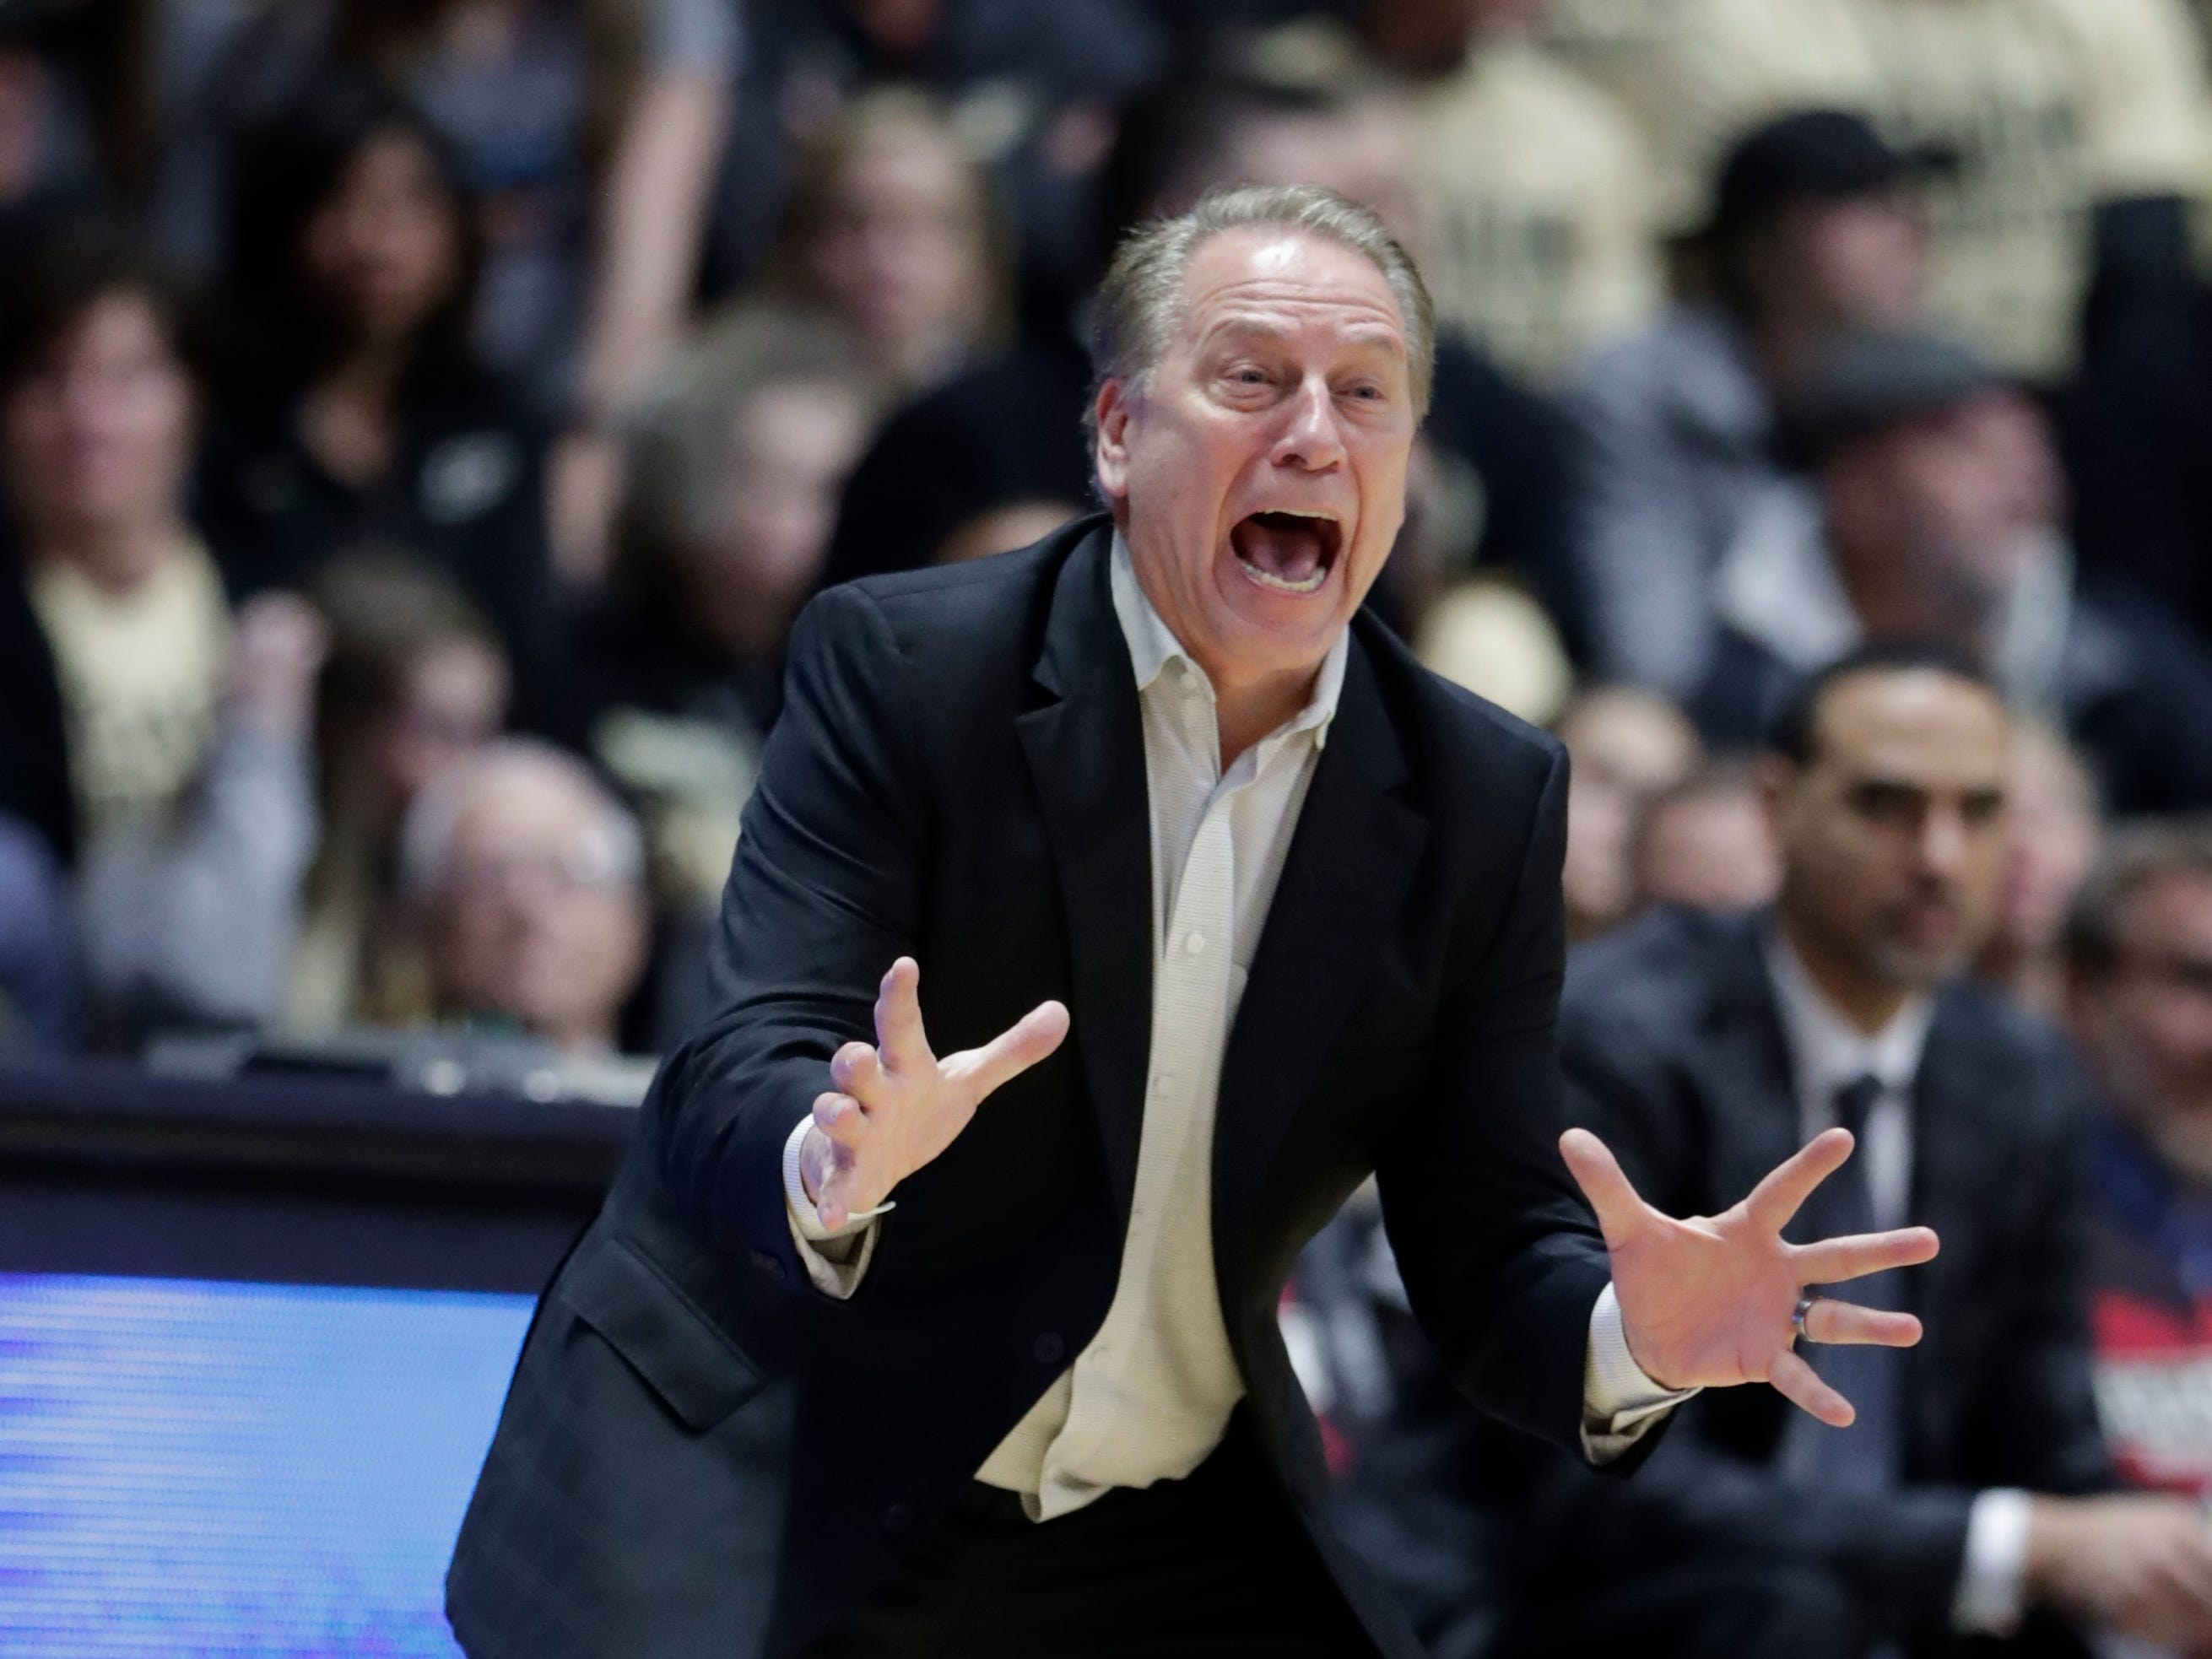 Michigan State head coach Tom Izzo gestures during the second half of an NCAA college basketball game against Purdue in West Lafayette, Ind., Sunday, Jan. 27, 2019.